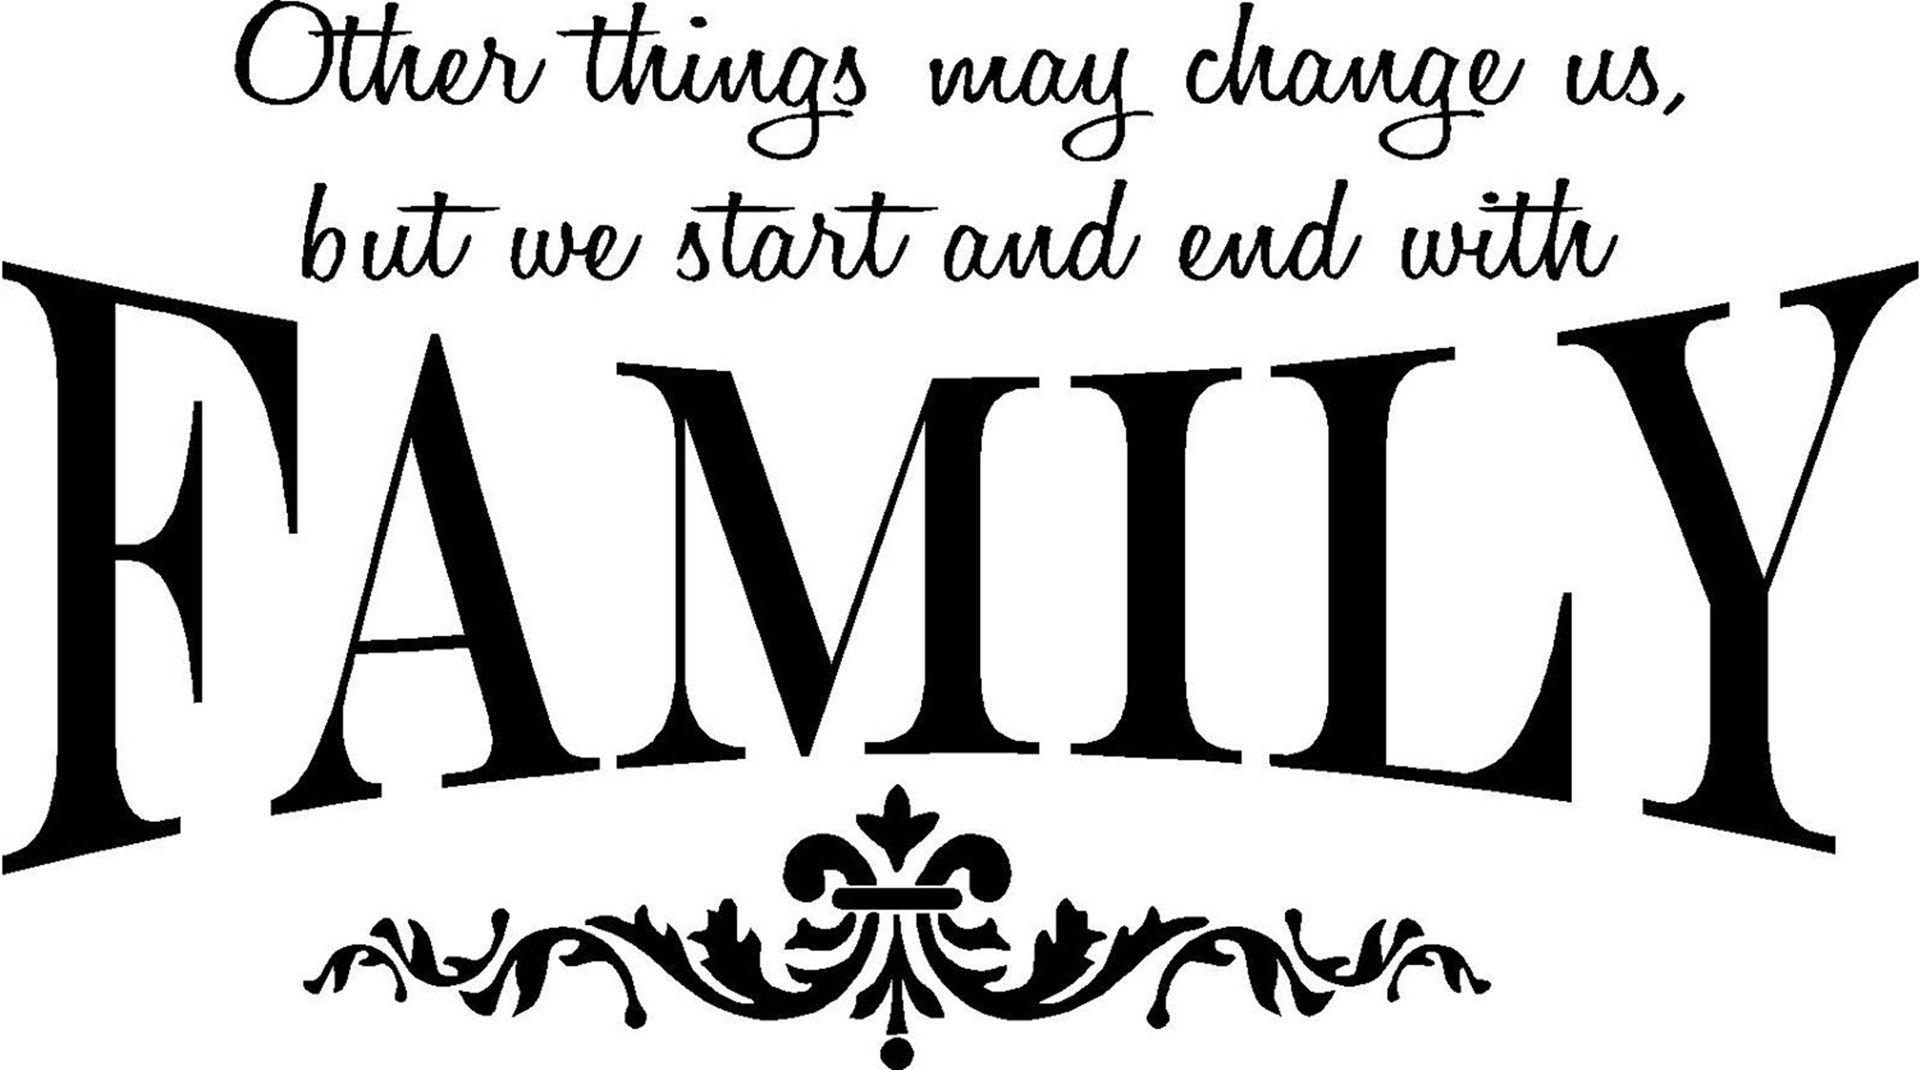 30 Lovely Family Quotes And Sayings Family Love Quotes Family Quotes Images Short Family Quotes